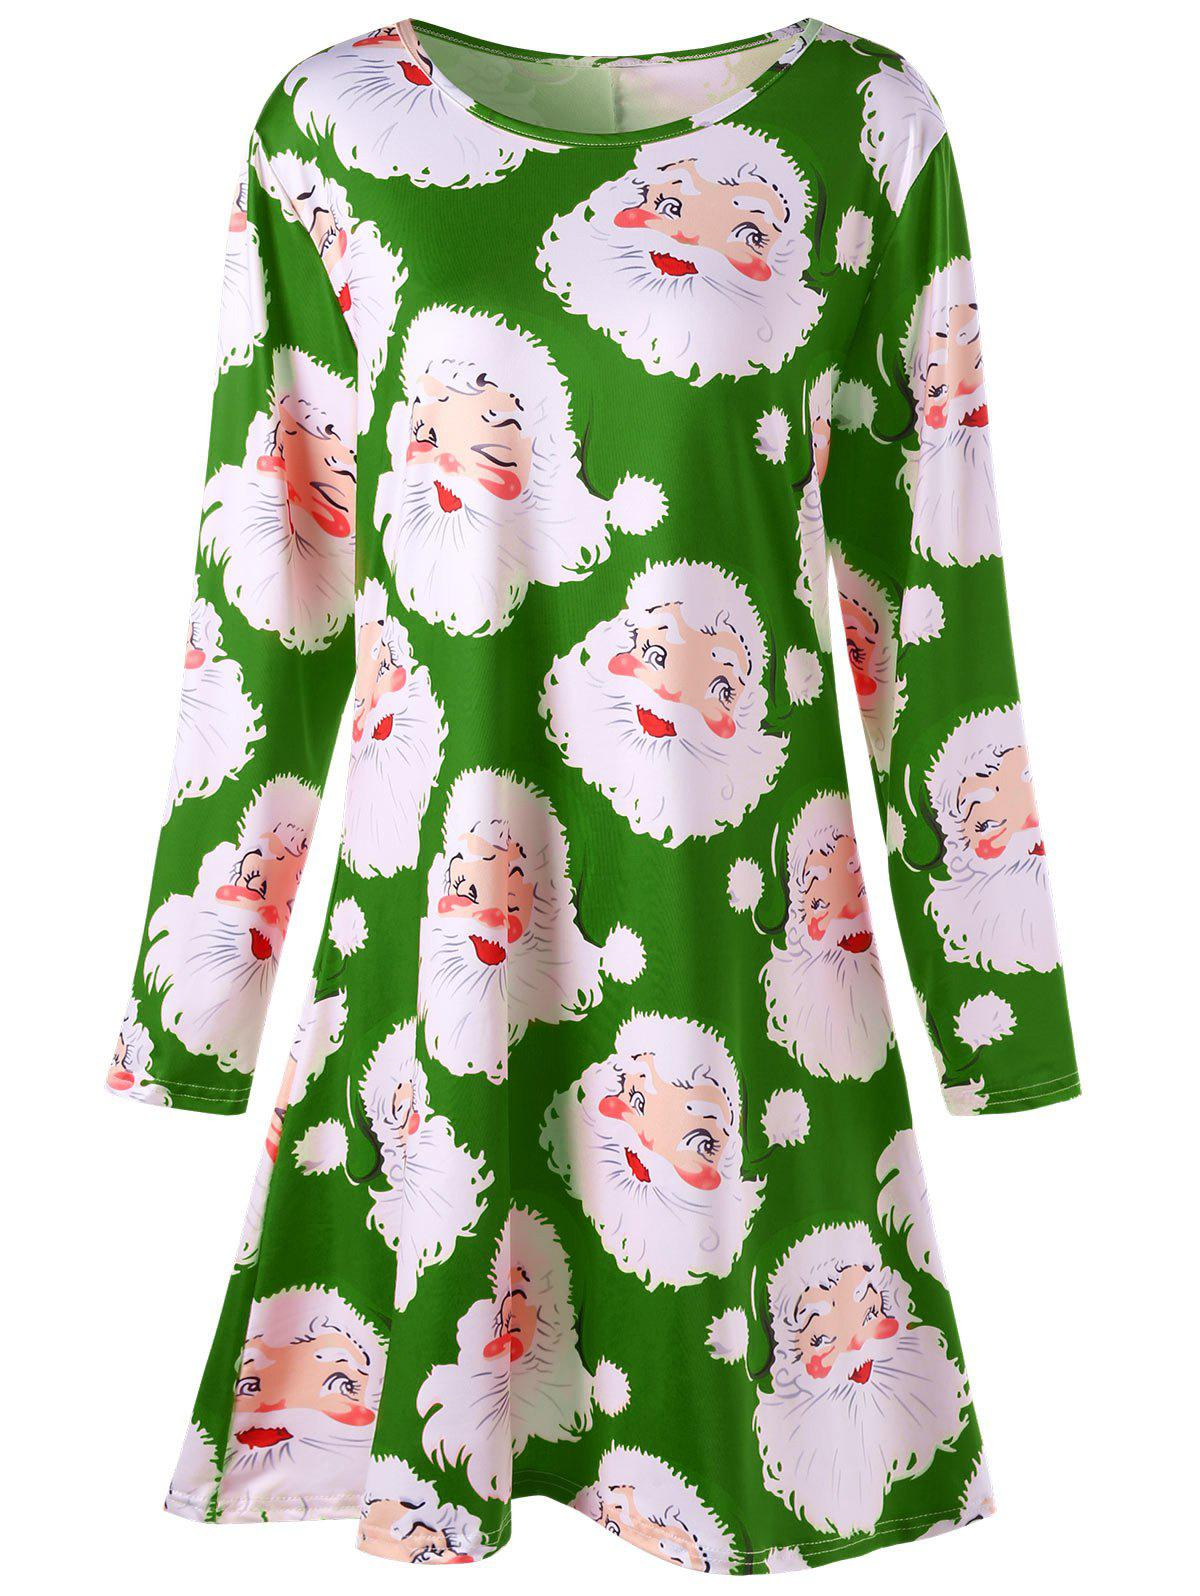 Santa Claus Print Mini Plus Size Swing Skater DressWOMEN<br><br>Size: XL; Color: GREEN; Style: Brief; Material: Polyester,Spandex; Silhouette: A-Line; Dresses Length: Mini; Neckline: Round Collar; Sleeve Length: Long Sleeves; Pattern Type: Print; With Belt: No; Season: Fall,Spring; Weight: 0.4200kg; Package Contents: 1 x Dress;